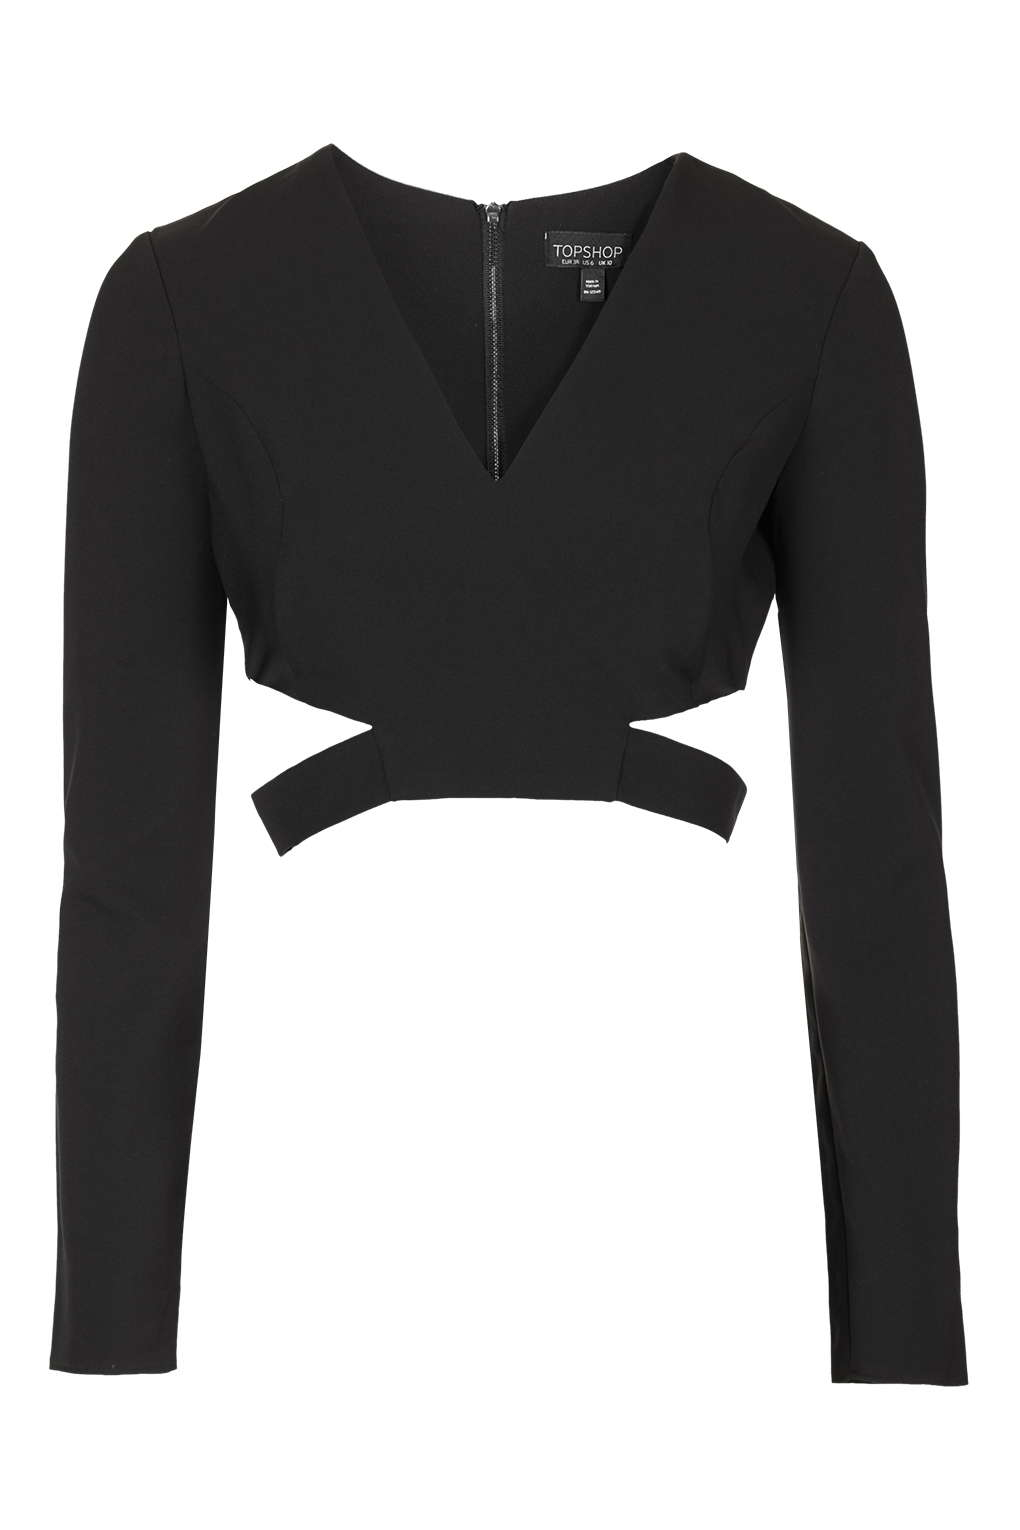 Topshop Cut Out Side Crop Top In Black Lyst